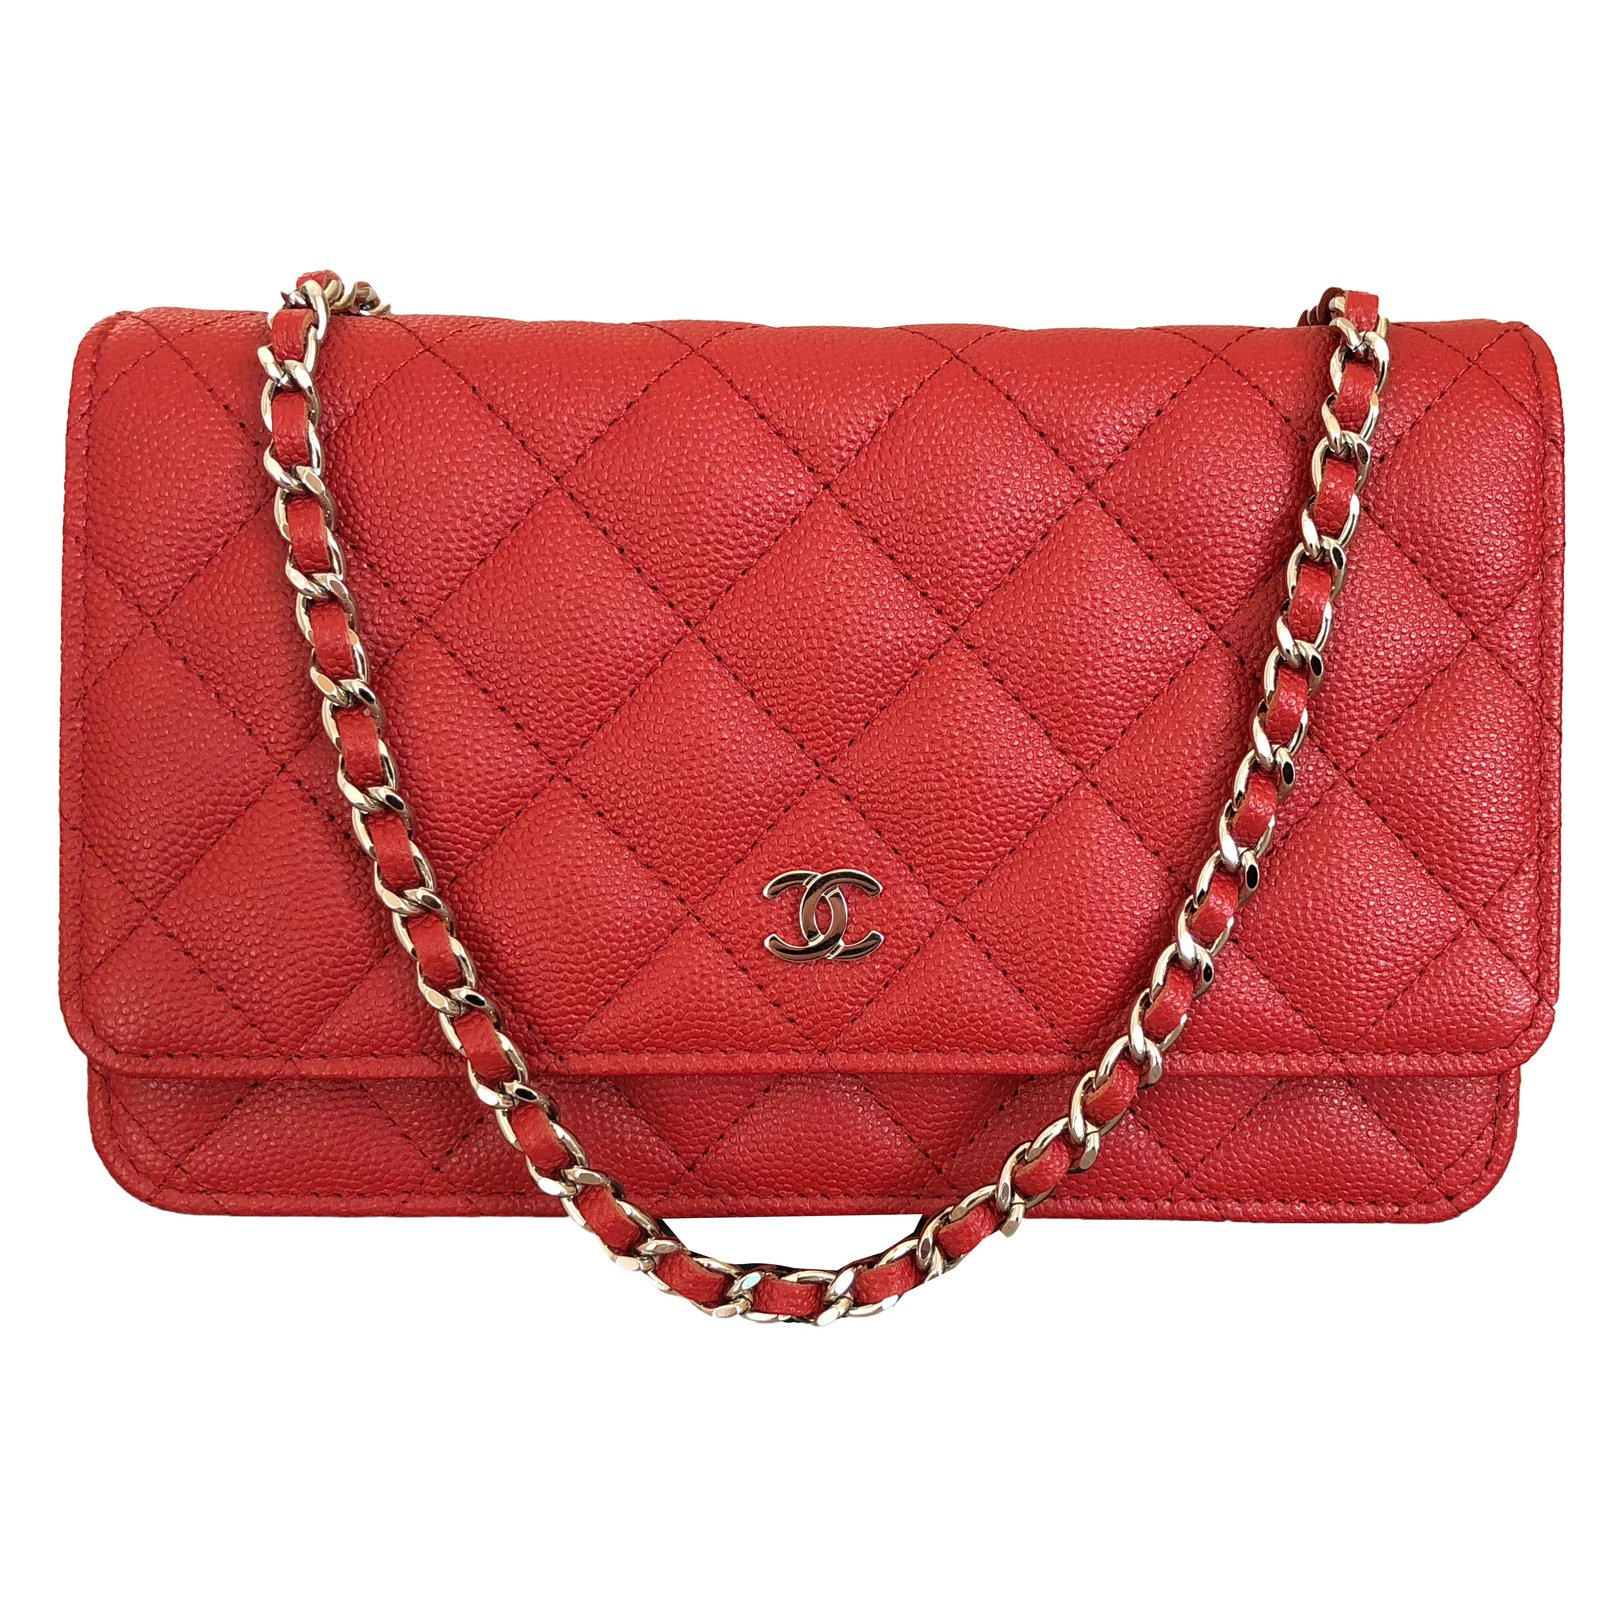 66fbbed70054 Chanel Wallet on Chain Red Caviar Leather with Shiny Silver Chain Handbags  Leather Red ref.